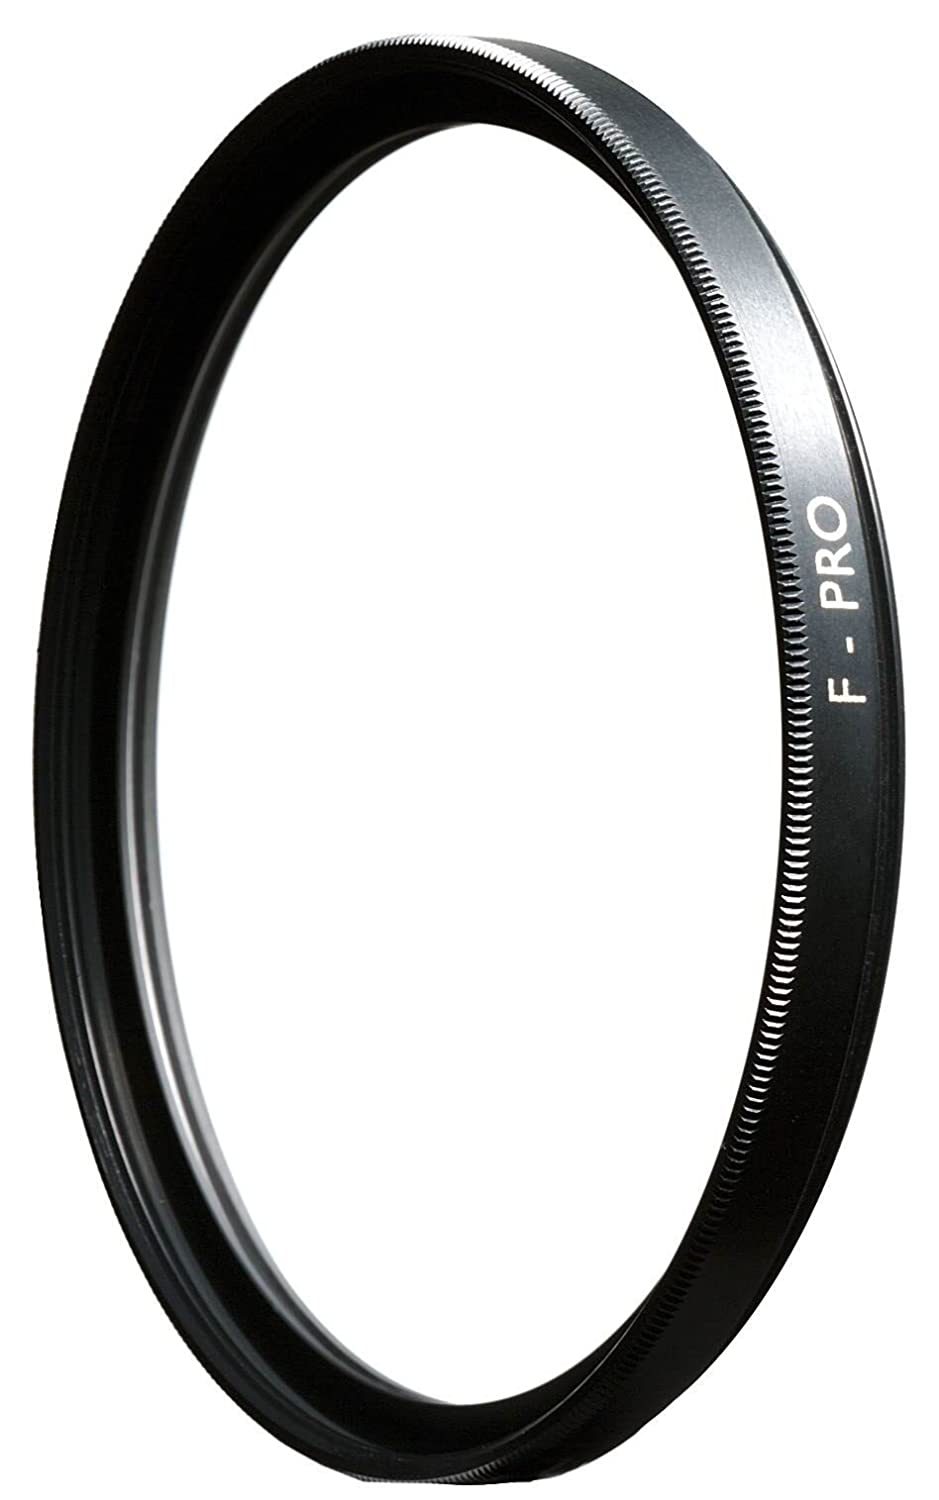 B+W 67mm Clear Filter with Multi-Resistant Coating (007M) Schneider Kreuznach 66-1001703